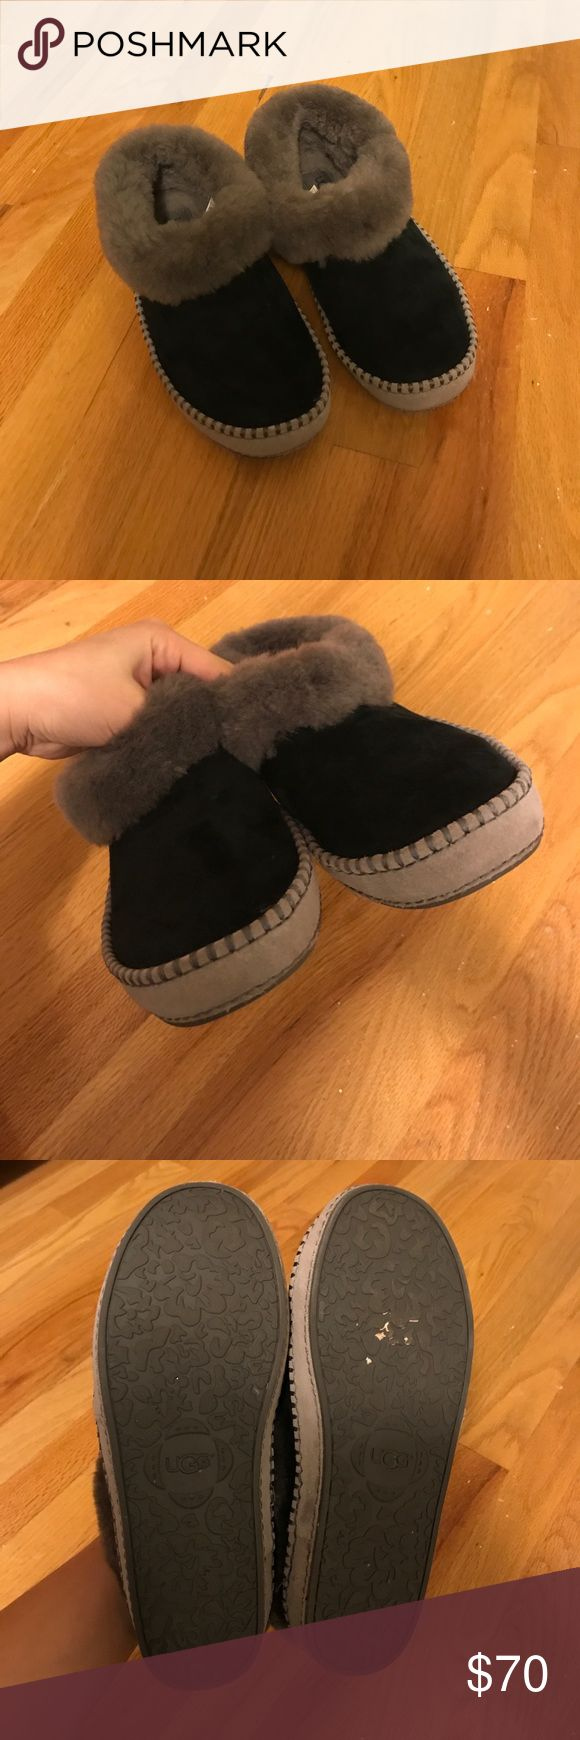 Wrin Black UGGs EUC. These UGGs are in almost perfect condition! There is very slight wear on the soles of the slipper due two wearing them outside once. These act as both indoor or outdoor slippers and have only been worn a few times (4-5x). They come sprayed with UGG water repellent. Please make an offer! UGG Shoes Slippers